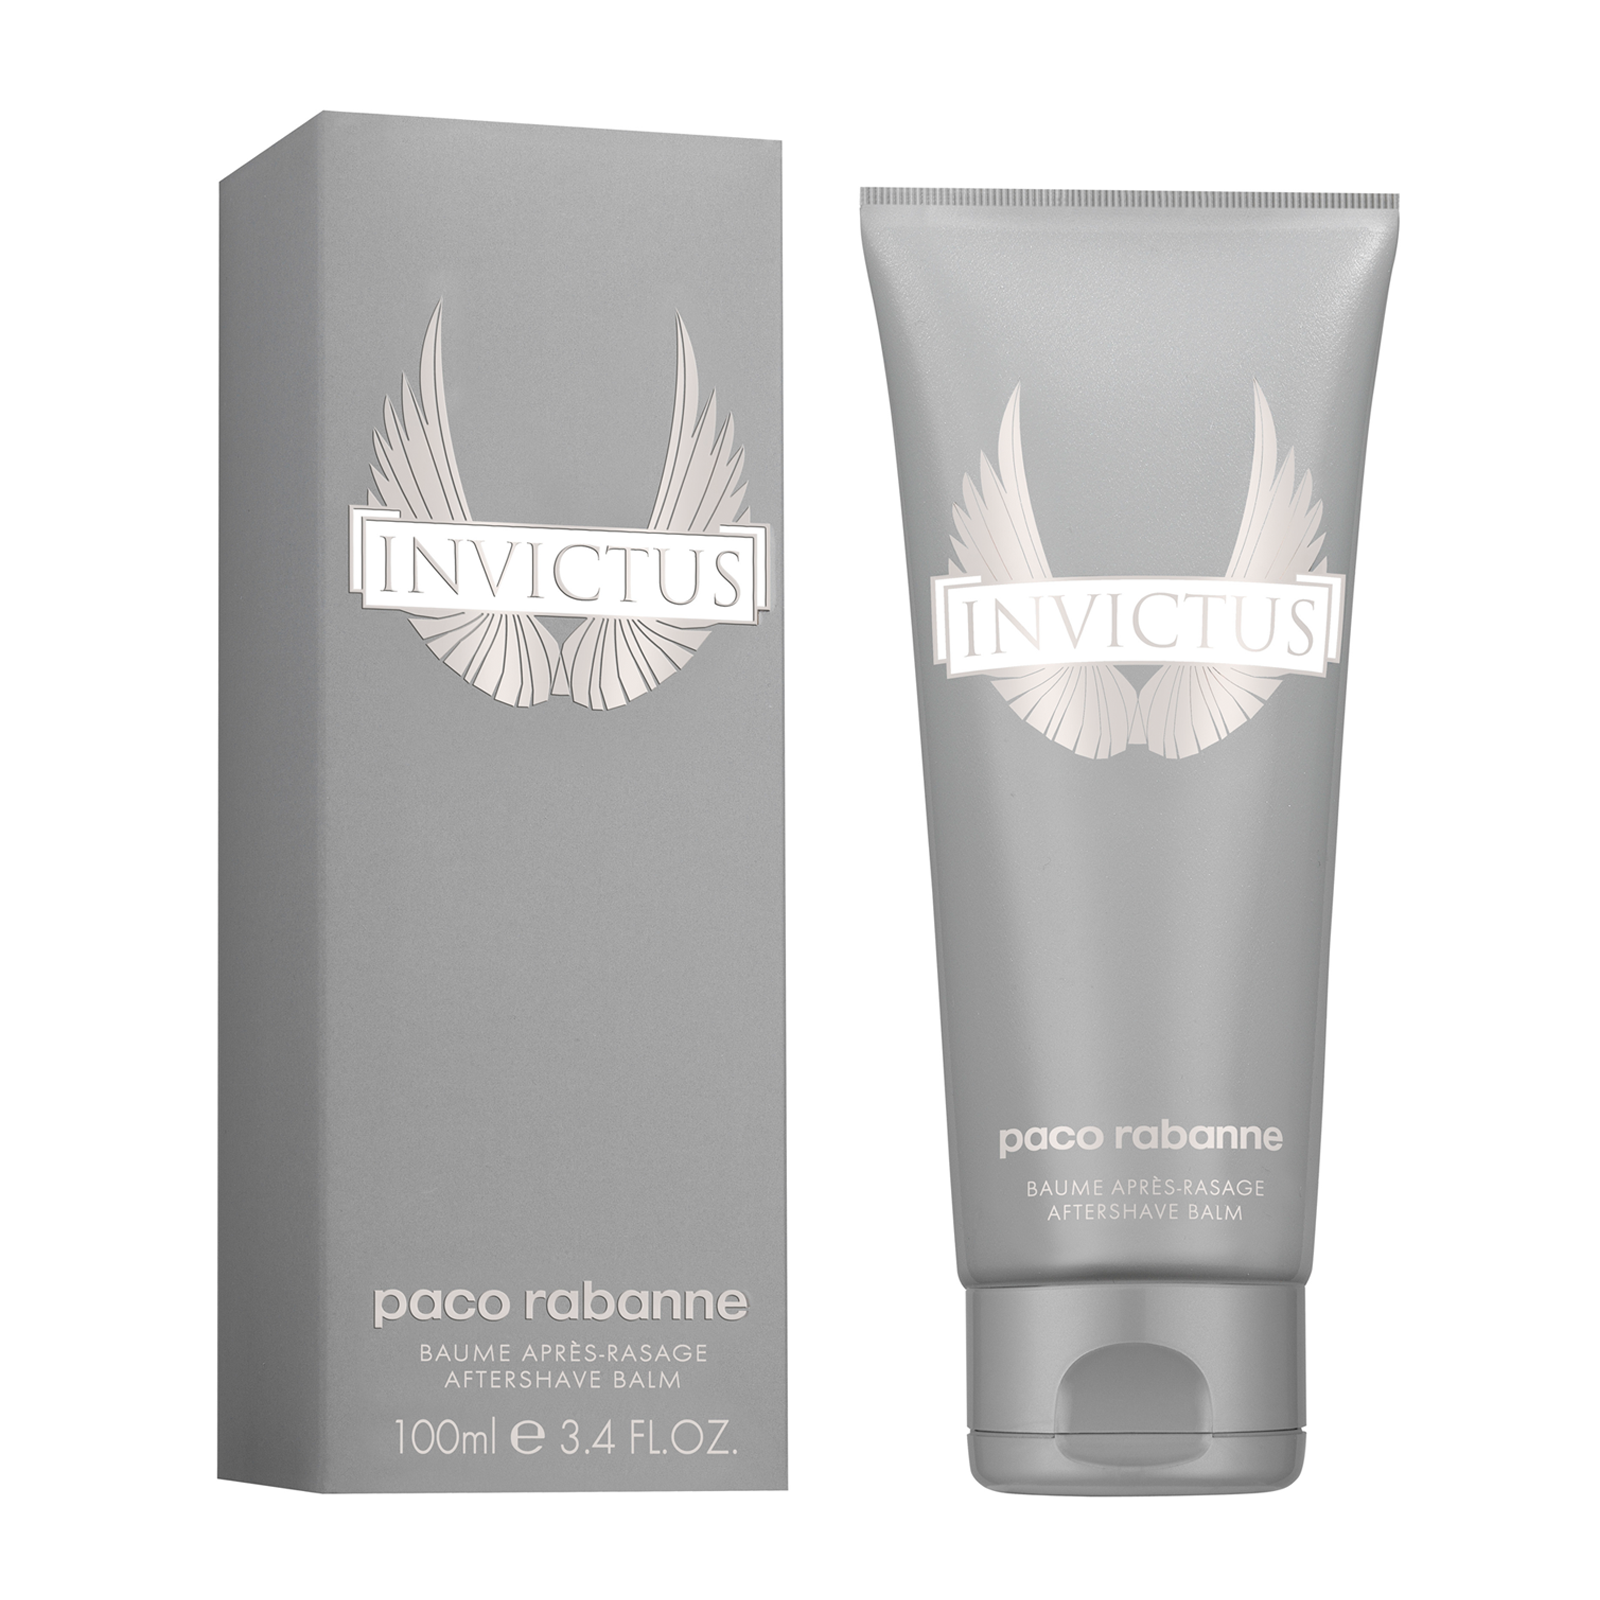 Paco Rabanne Invictus for Men 100ml After Shave Balm